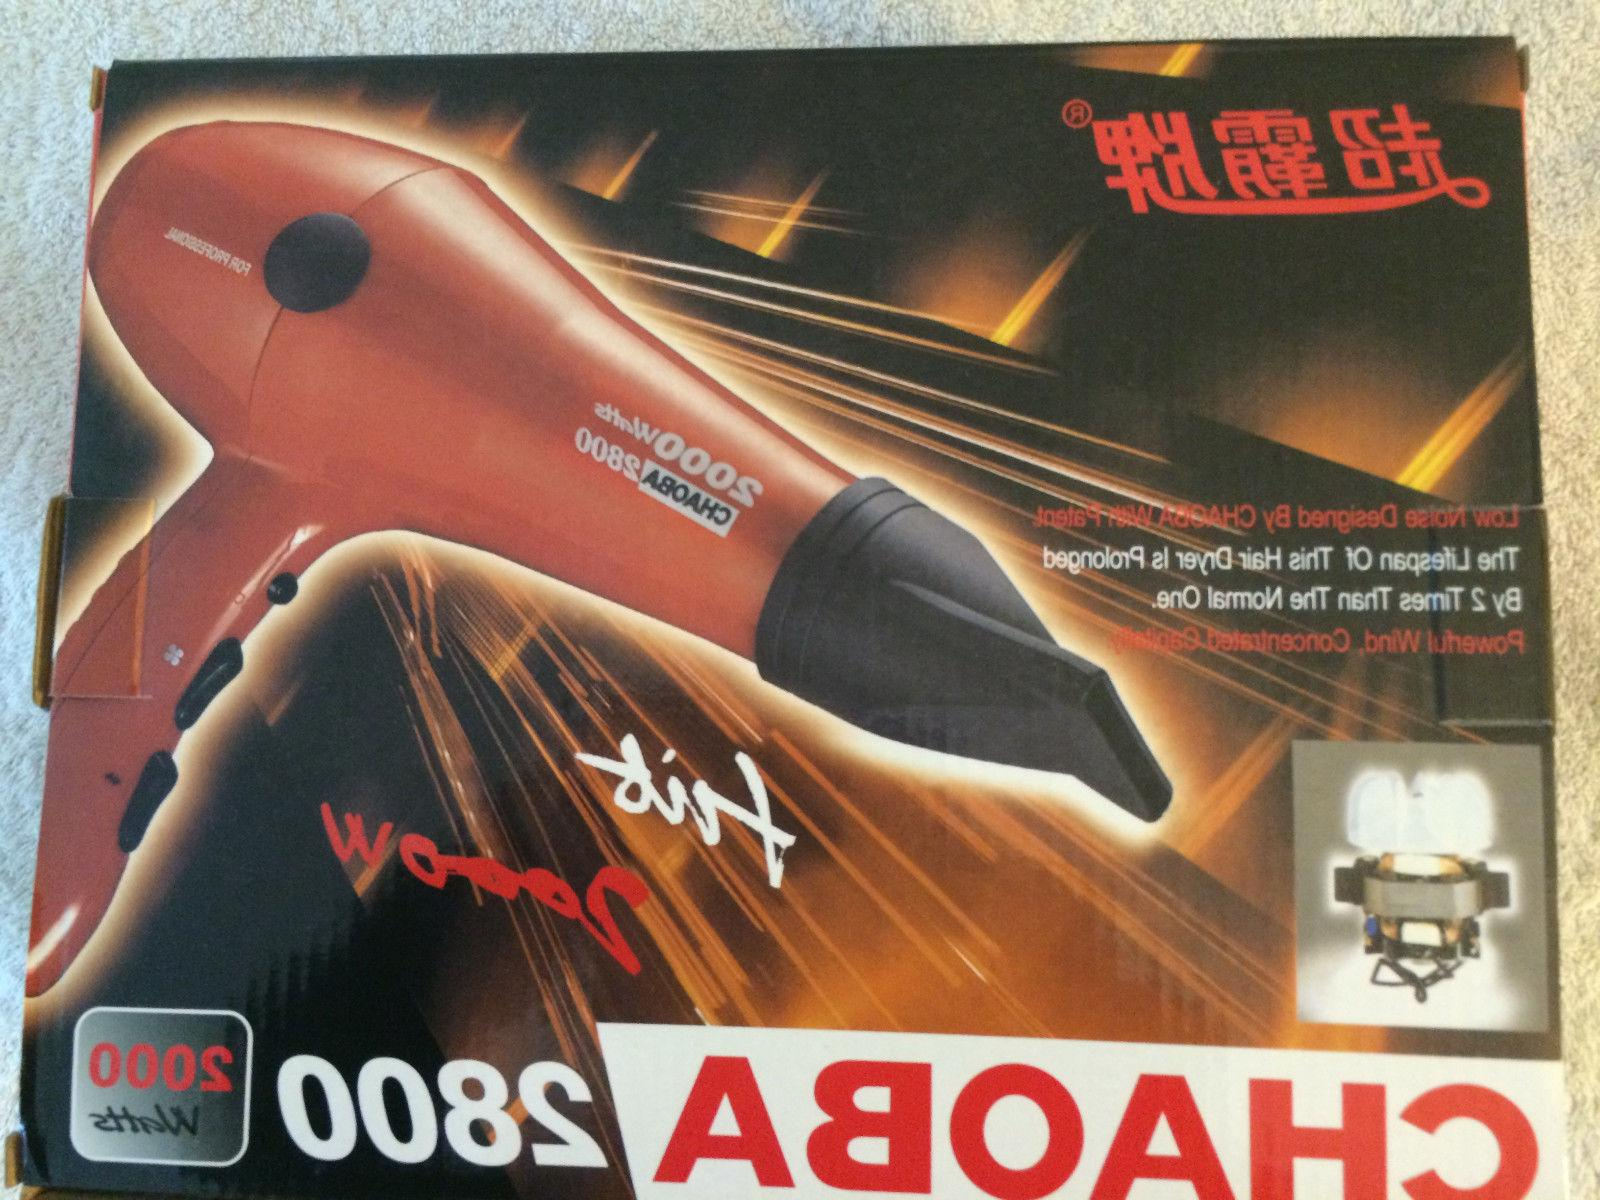 CHAOBA Noise Professional BLOW DRYER